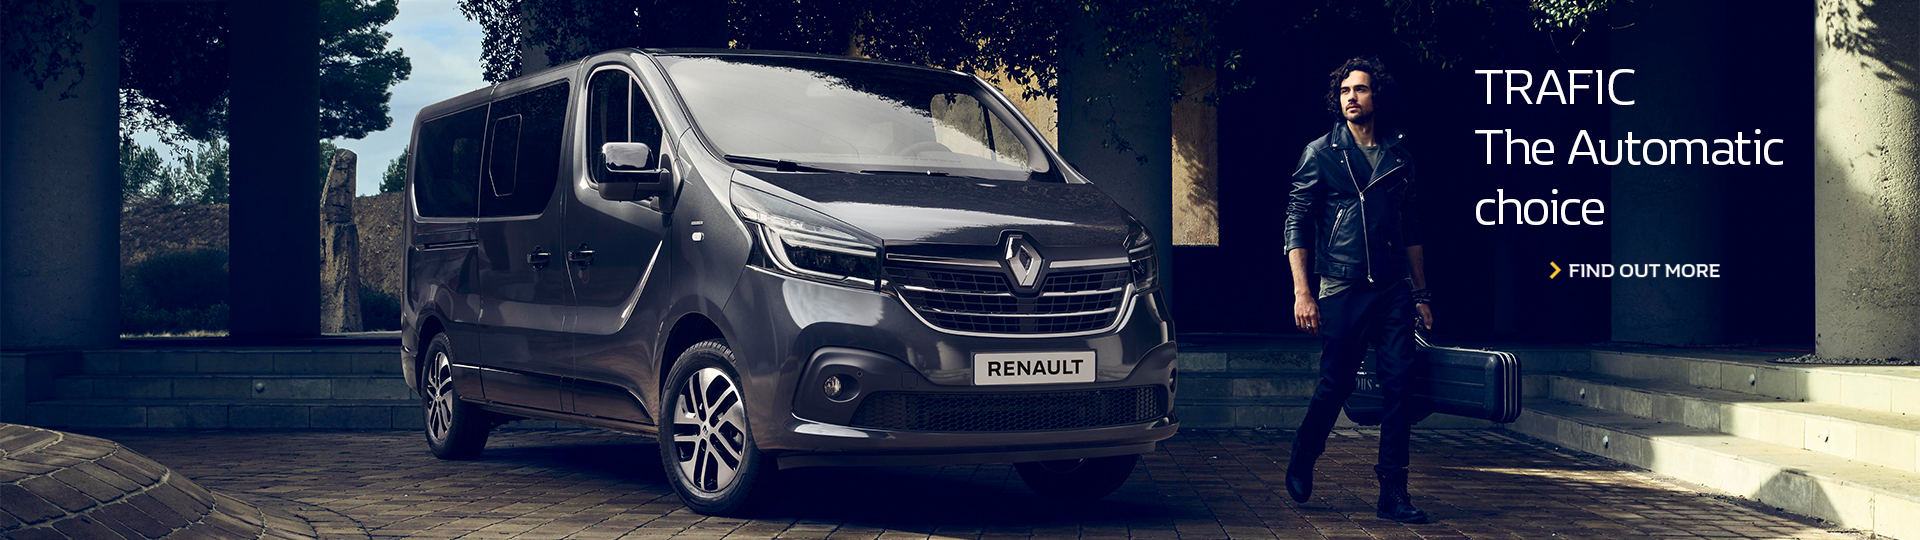 Renault TRAFIC. The automatic choice. Find out more